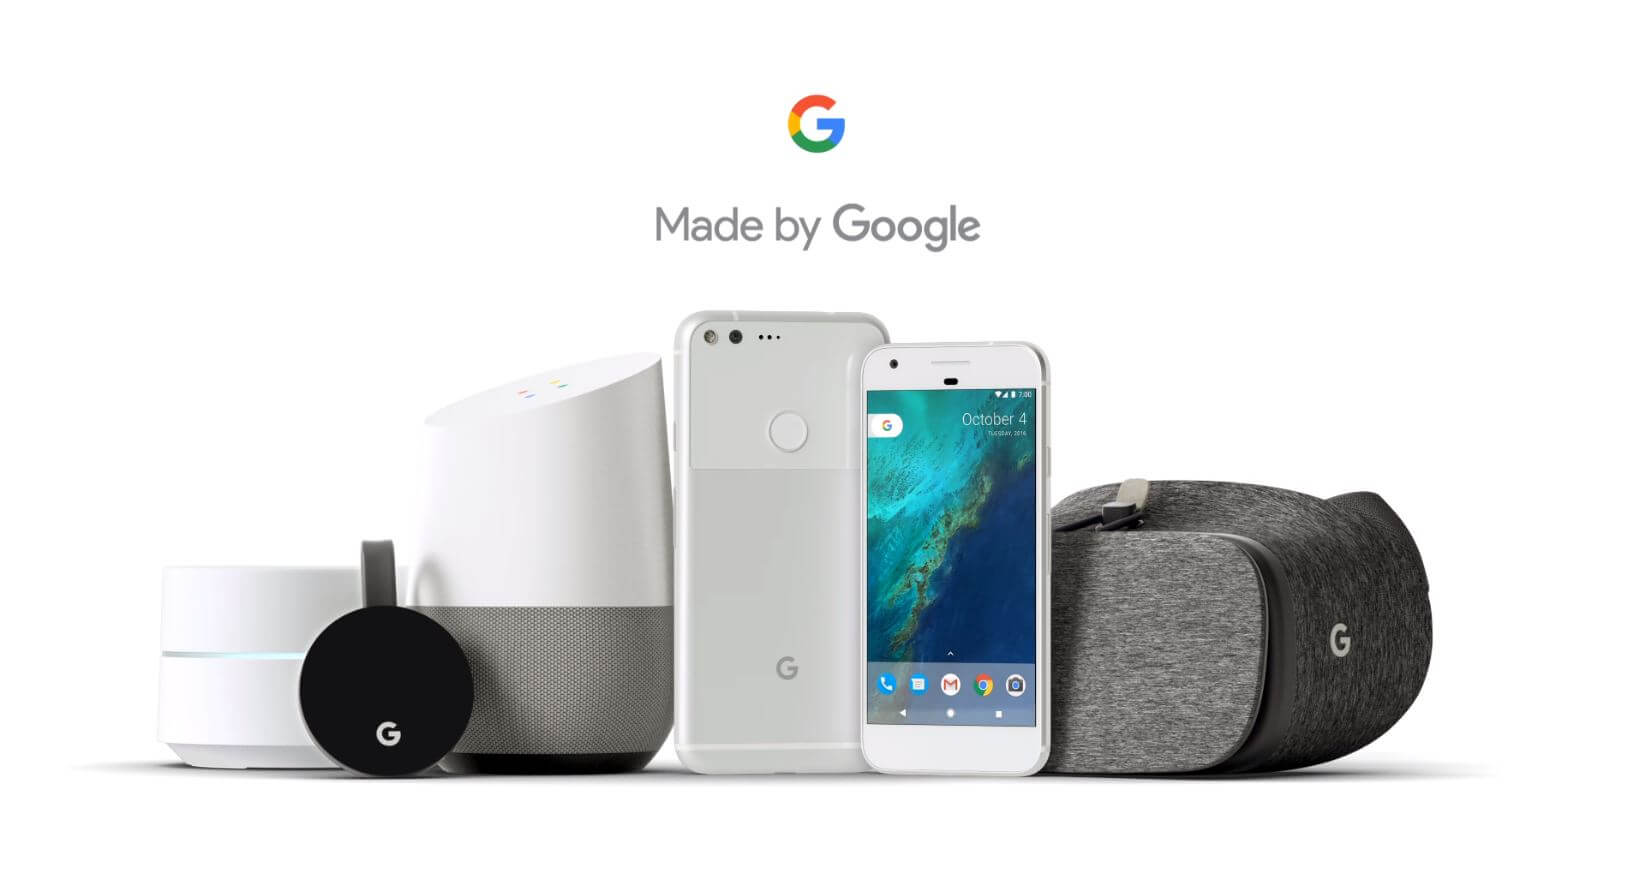 Google pop-up shop